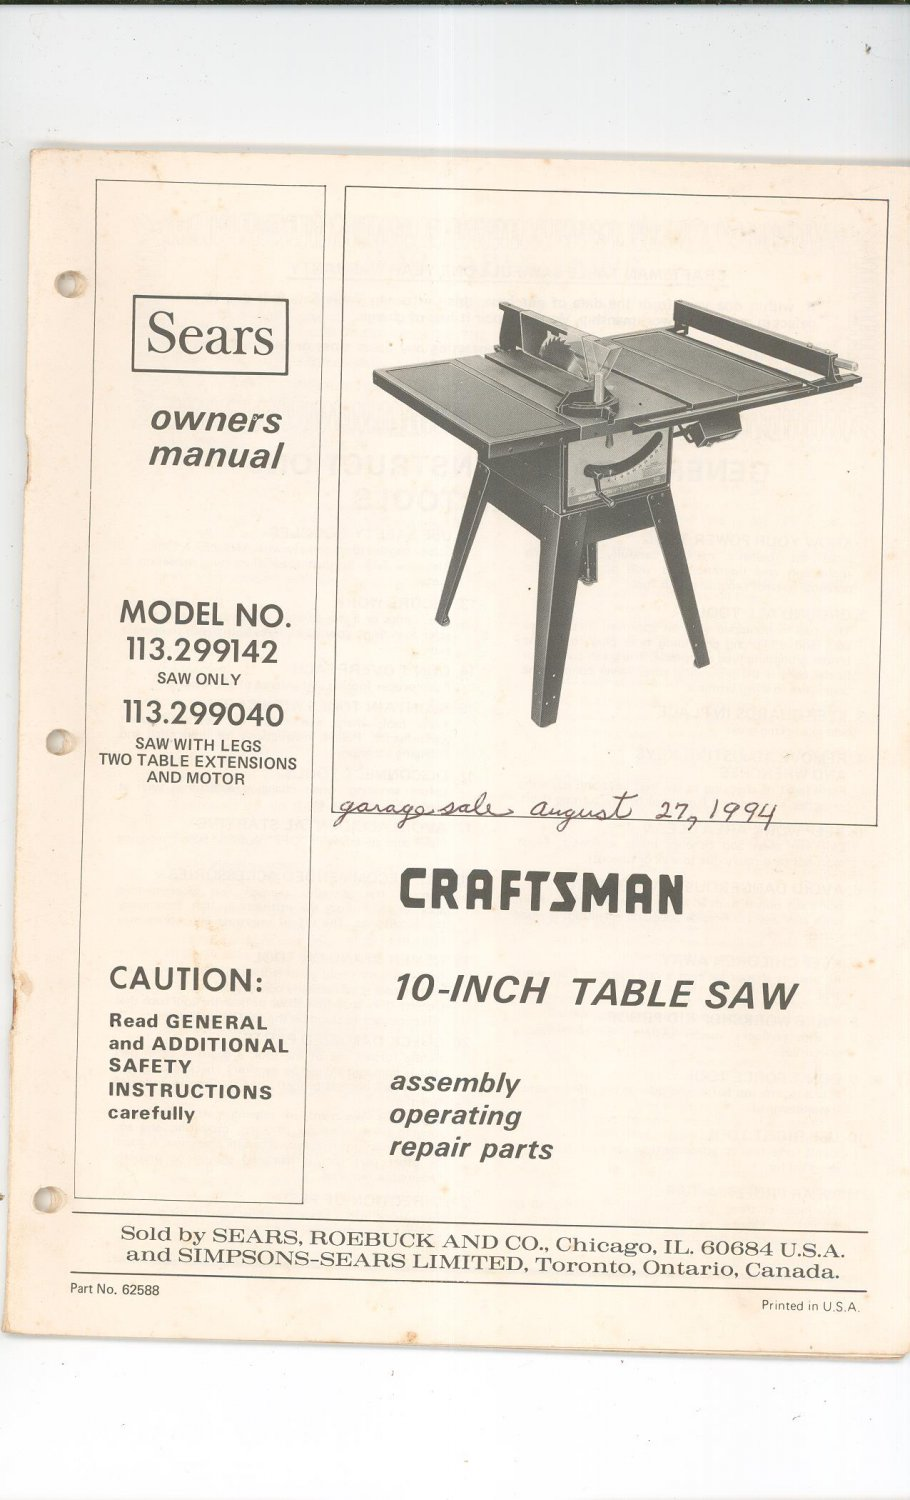 Sears craftsman 10 inch table saw owners manual for 10 inch table saw craftsman